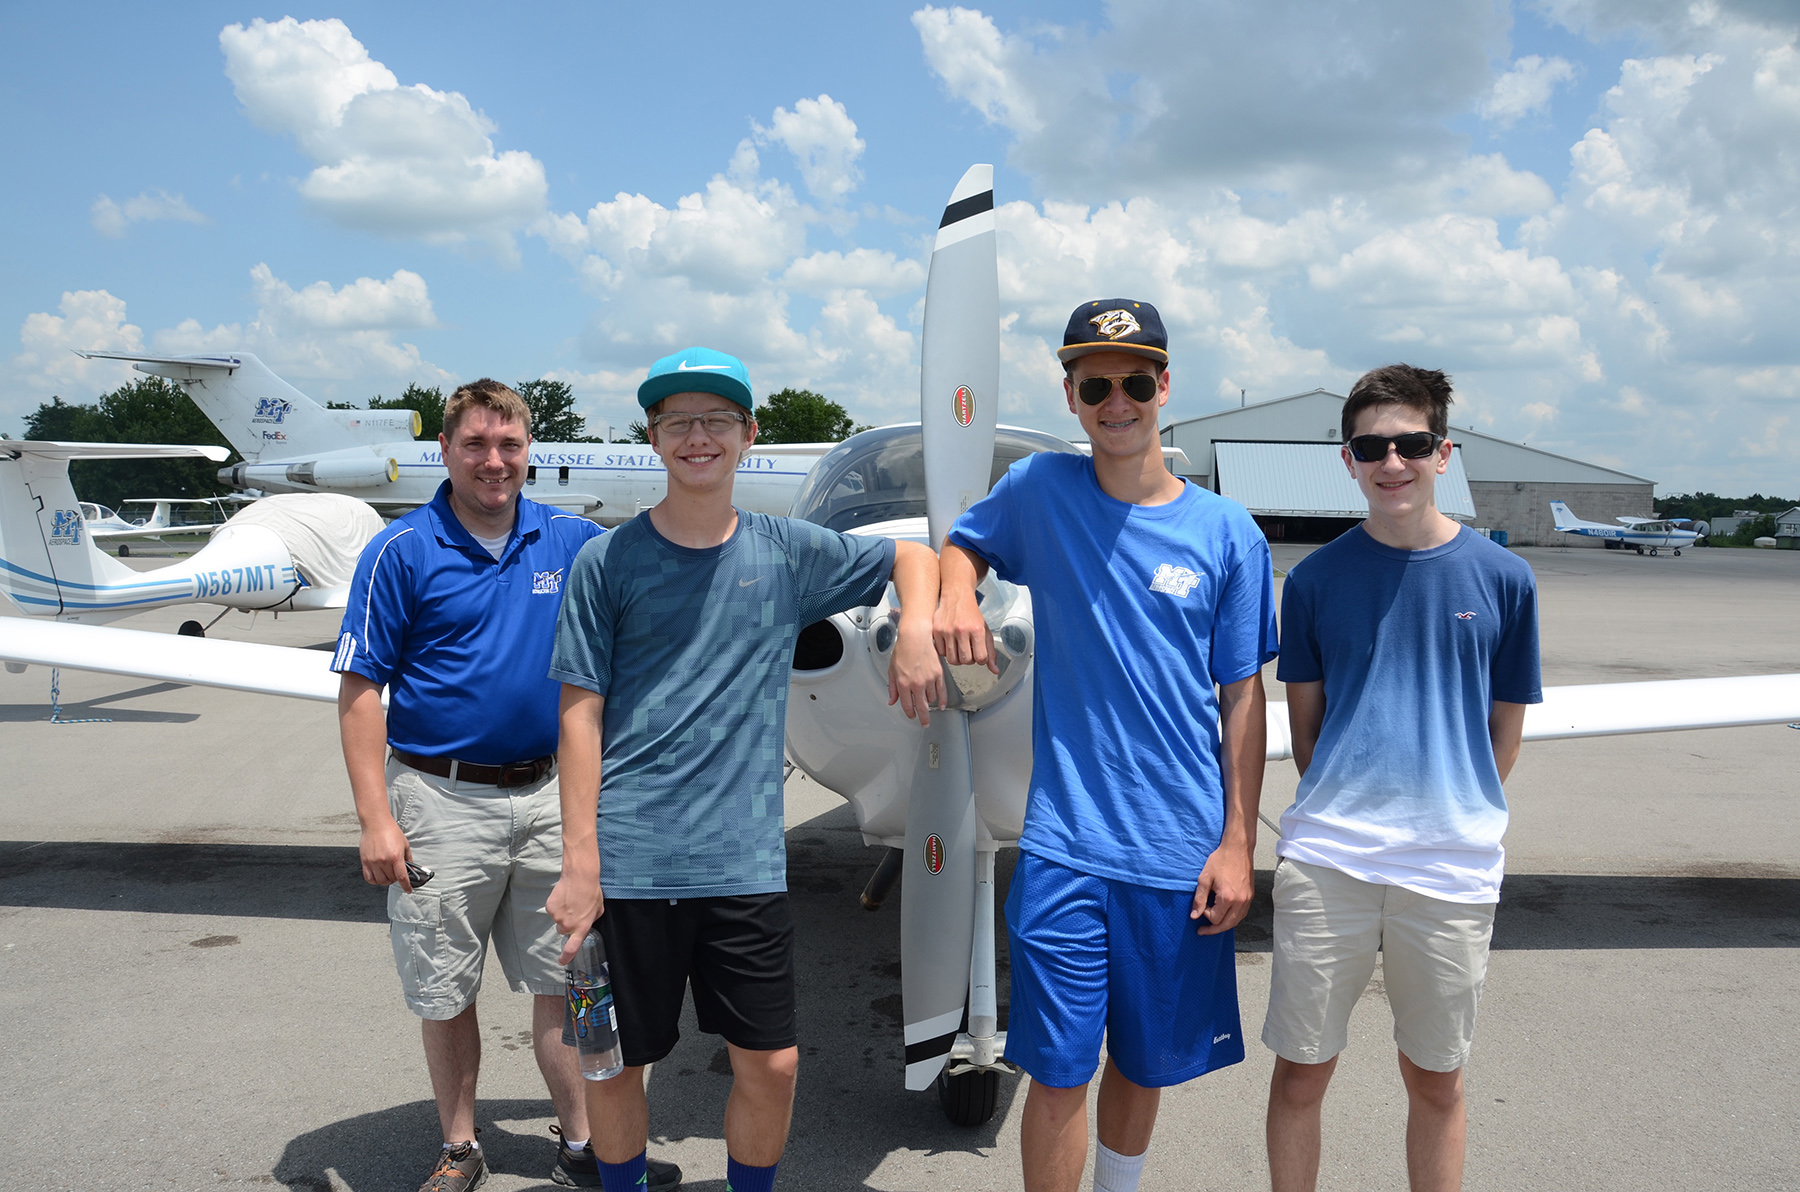 MTSU aviation camp gives high schoolers a chance to soar